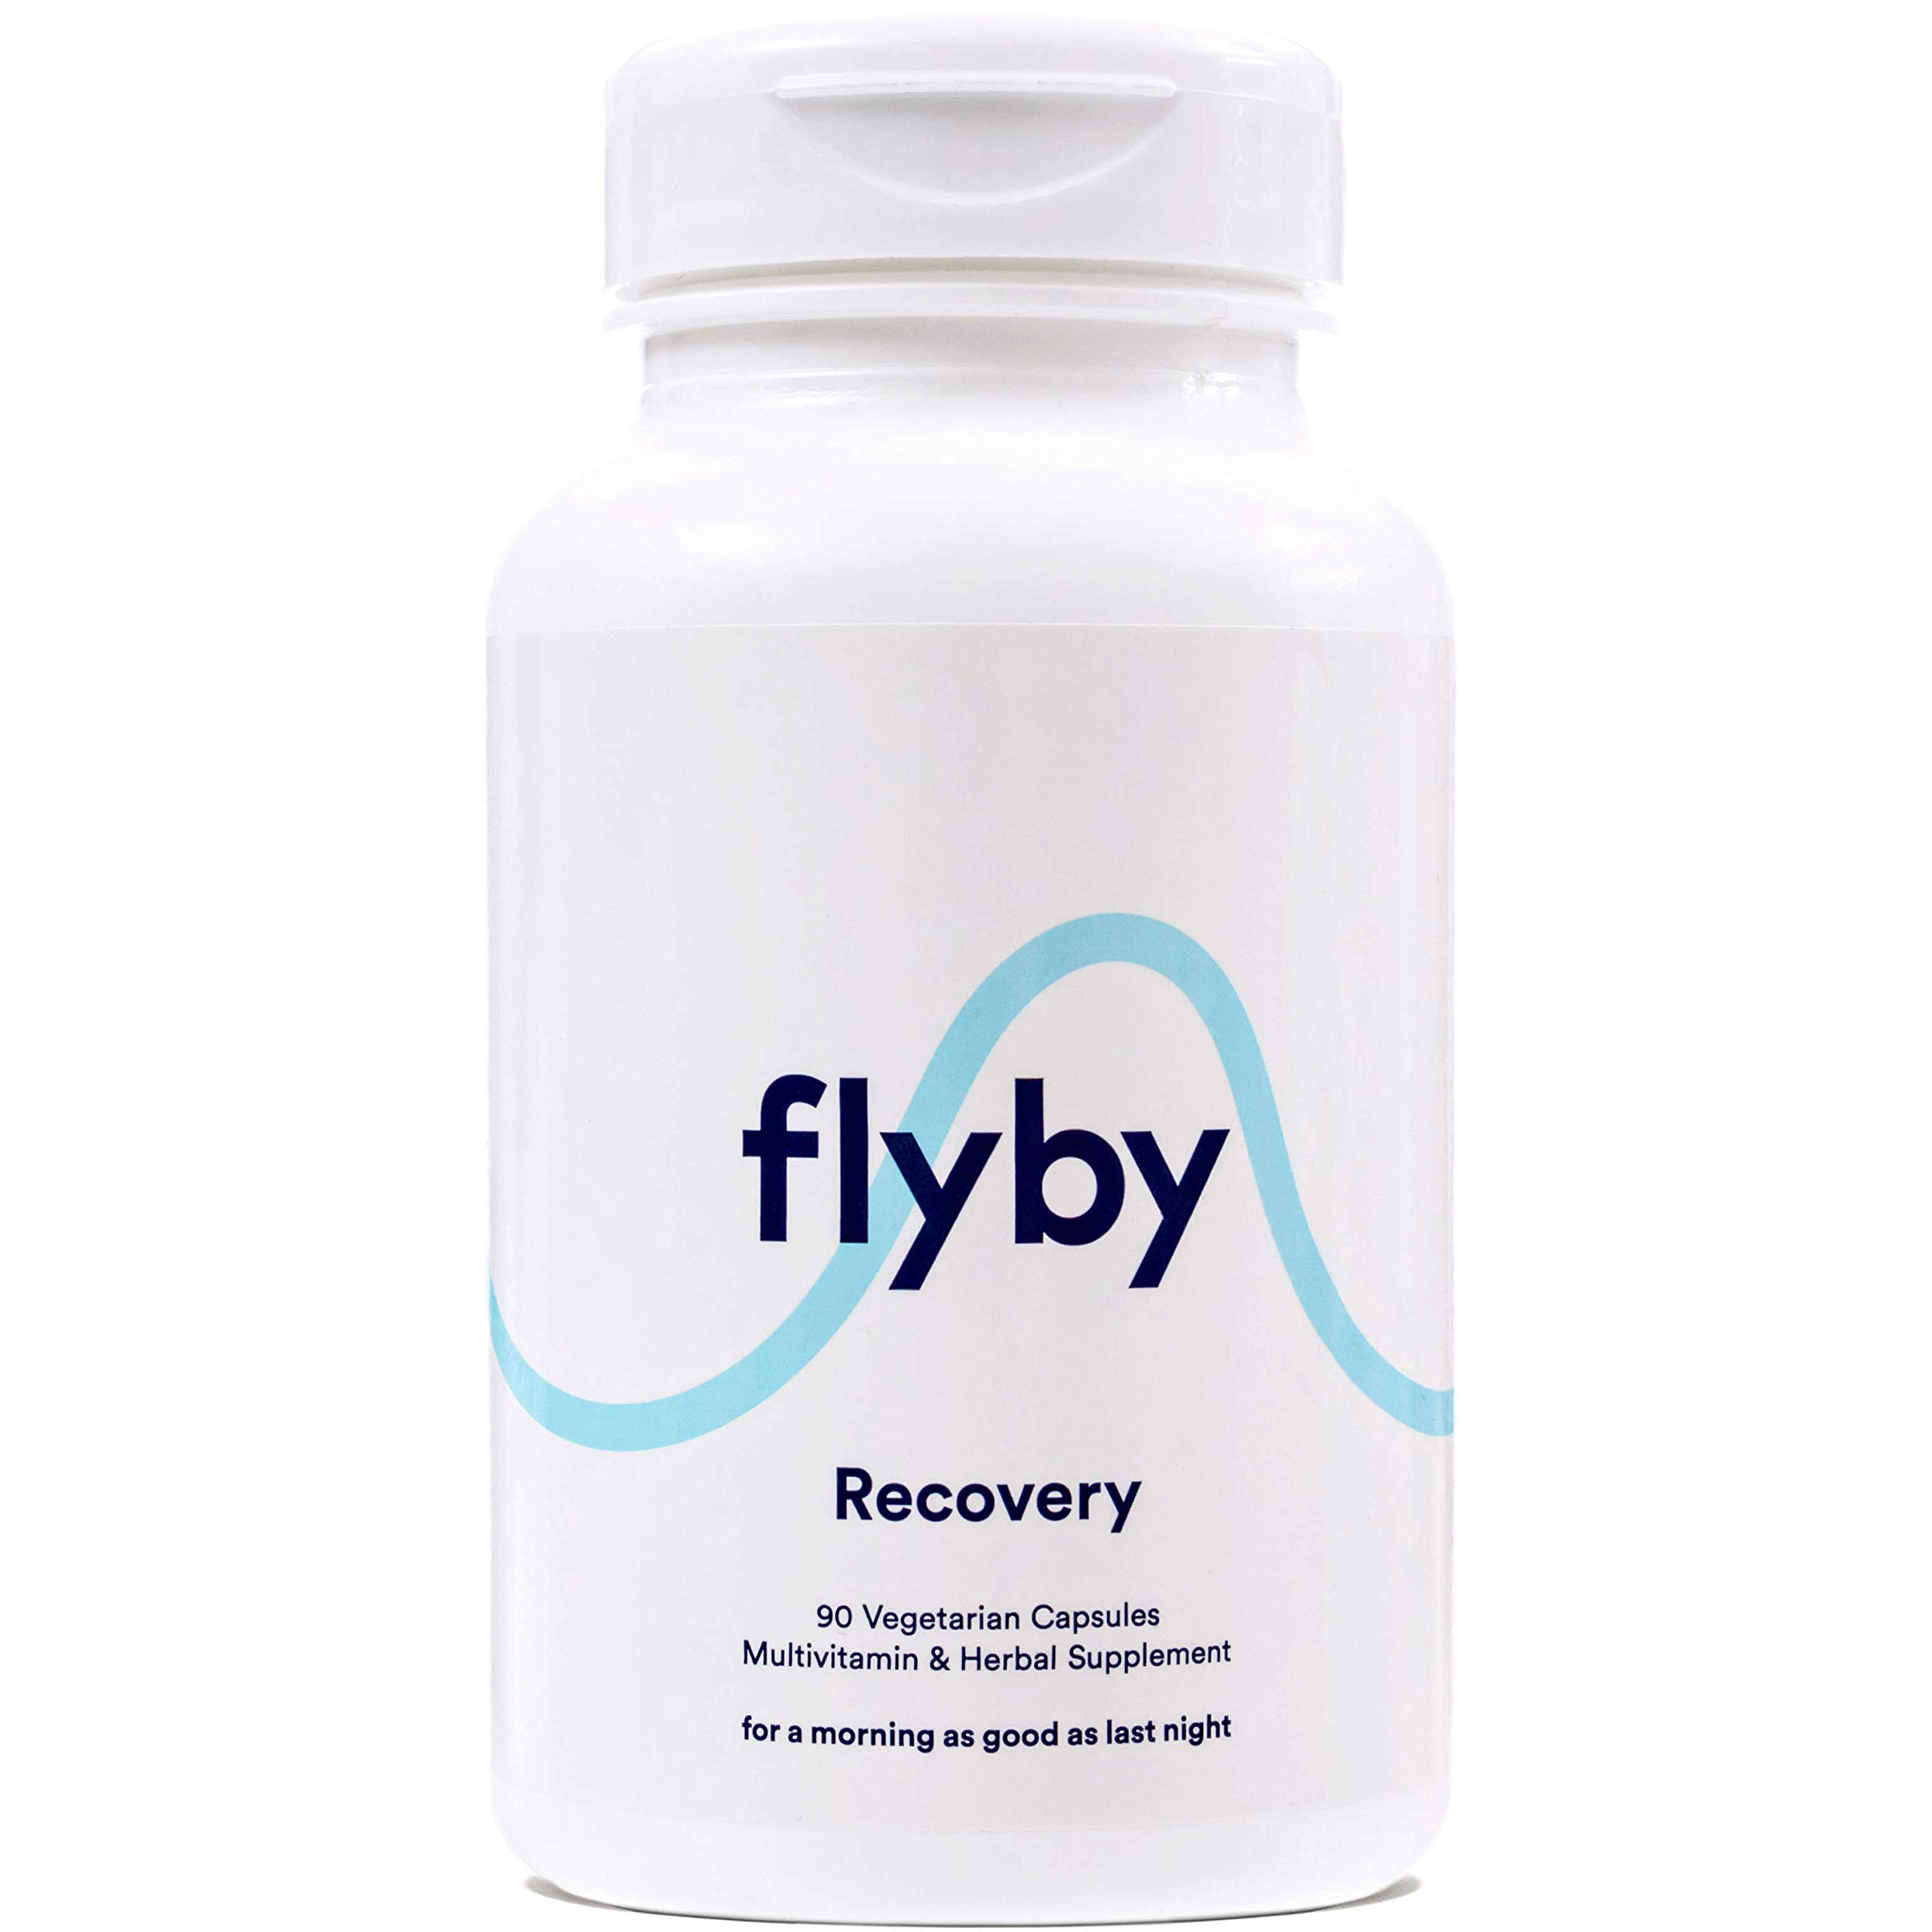 Flyby Hangover Cure & Prevention Pills (90 Capsules) | Dihydromyricetin (DHM), Chlorophyll, Prickly Pear, N-Acetyl-Cysteine, Milk Thistle for Morning After Alcohol Recovery & Aid | Certified Organic